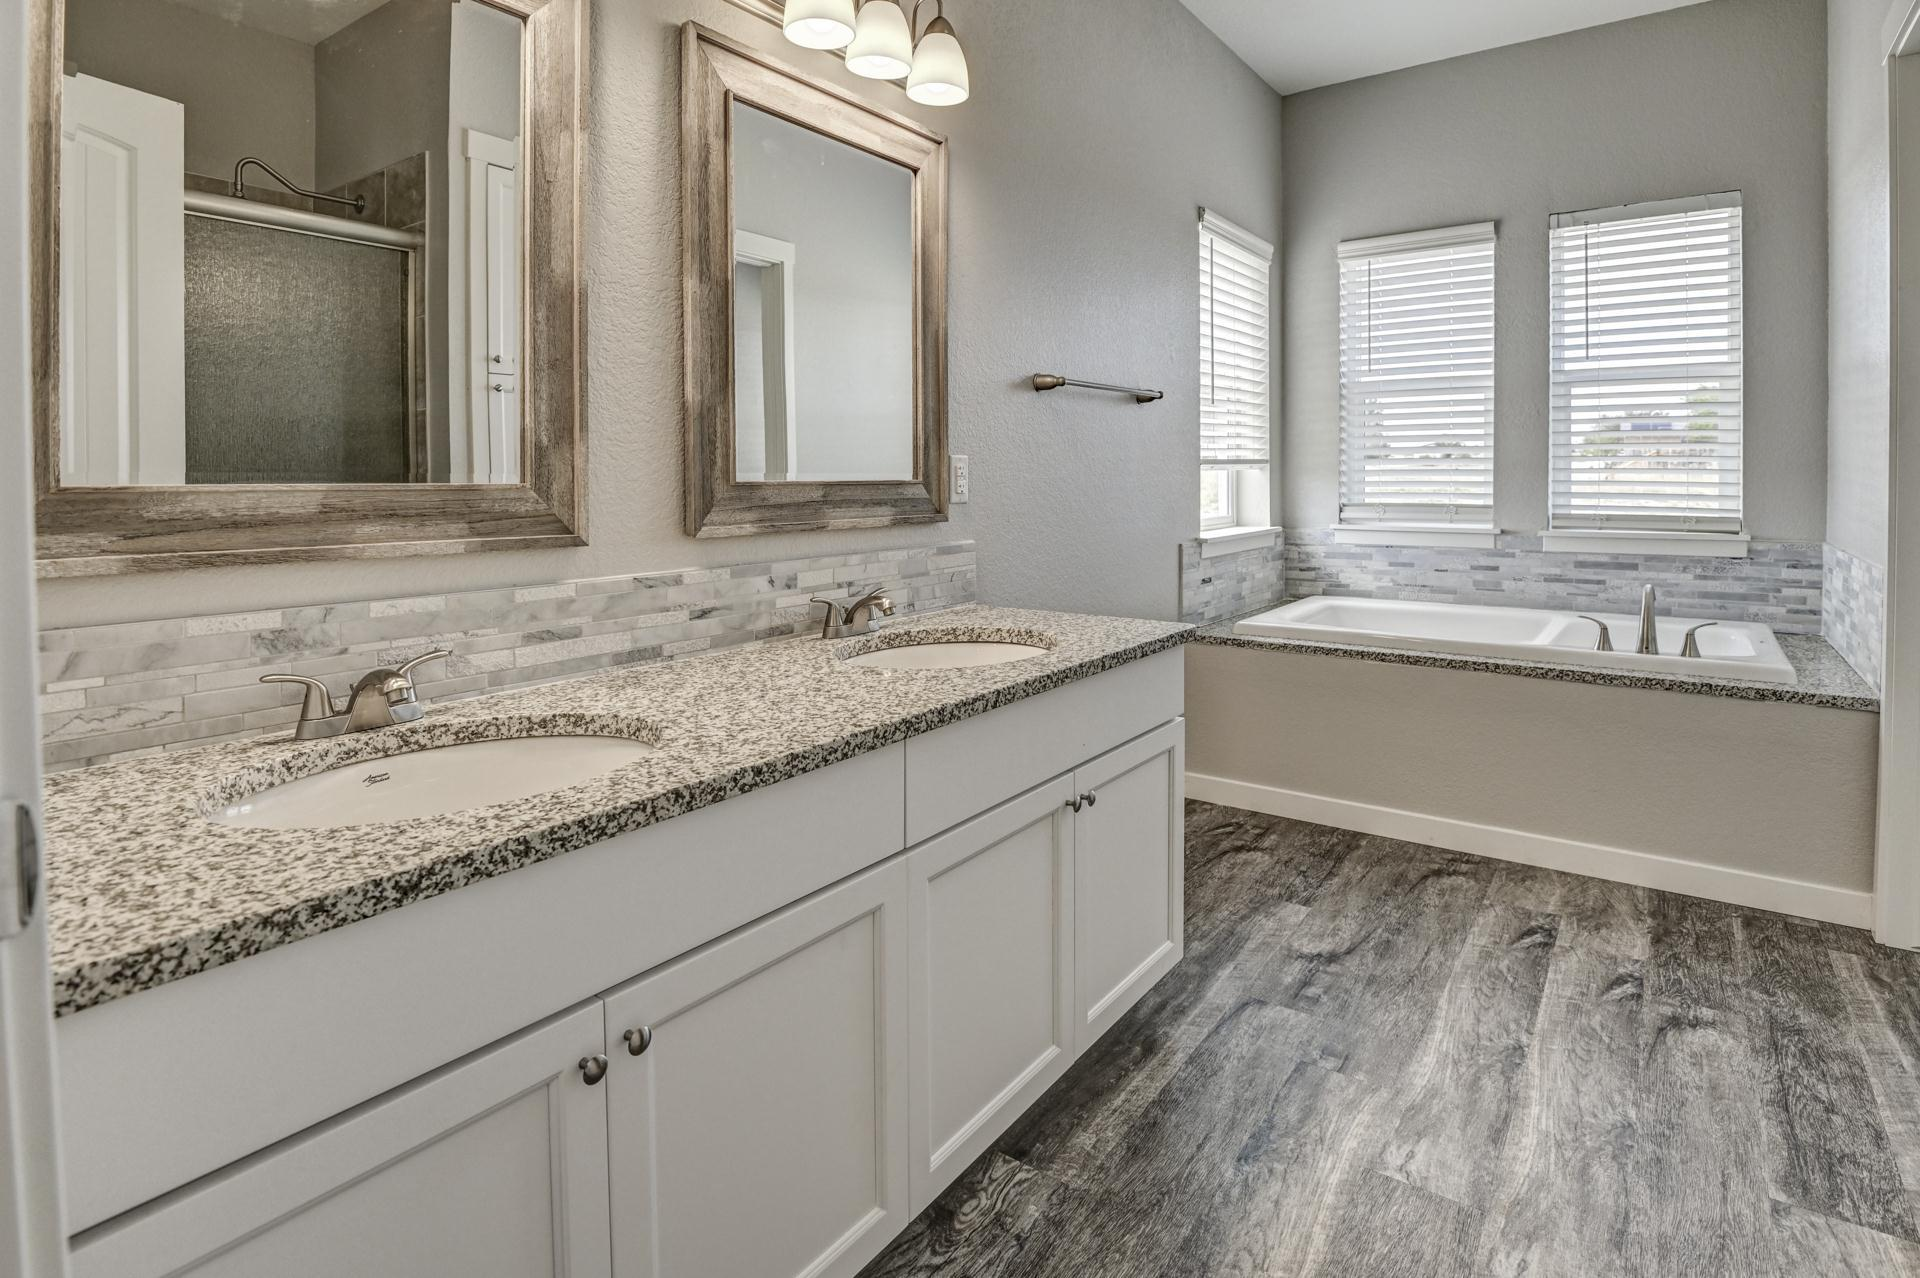 Bathroom featured in the Harmony By Westover Homes in Pueblo, CO